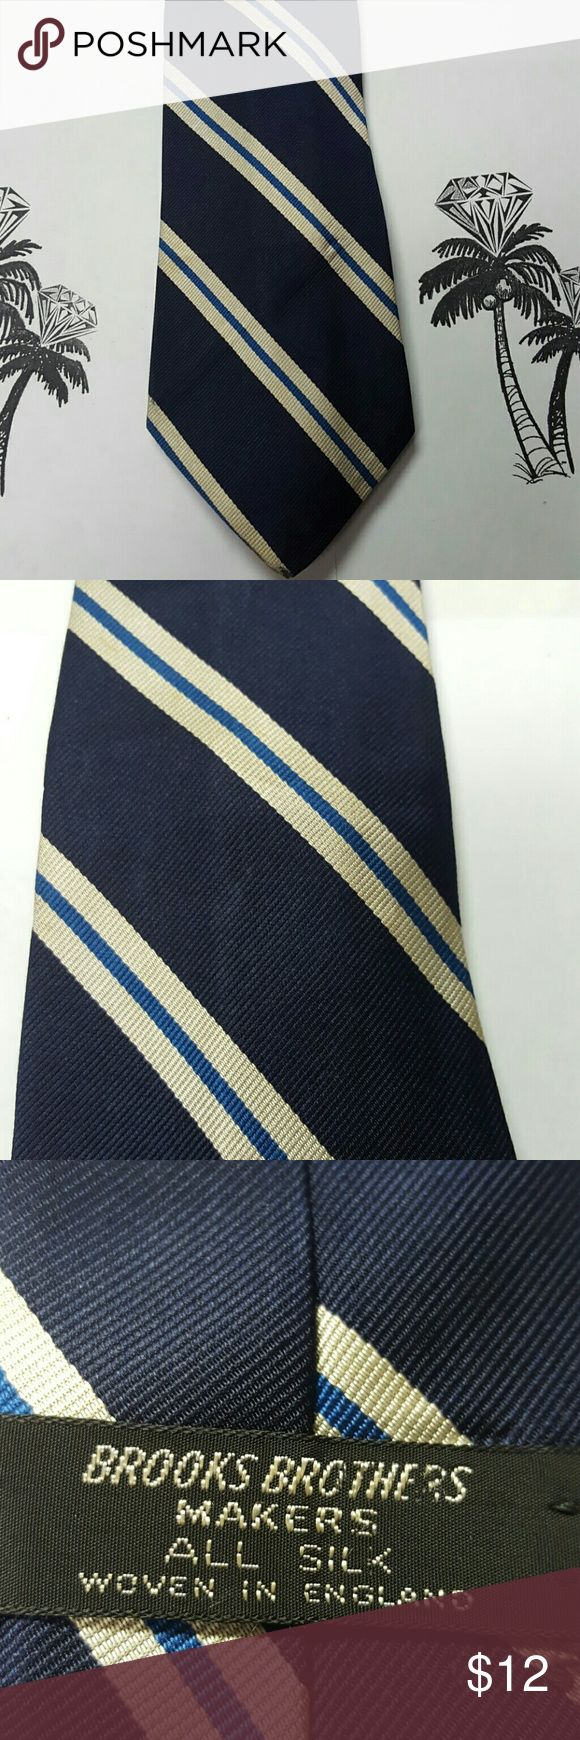 Vintage Brooks Brothers Silk Tie Navy and cream with blue striped tie. Good vintage condition. Brooks Brothers Accessories Ties